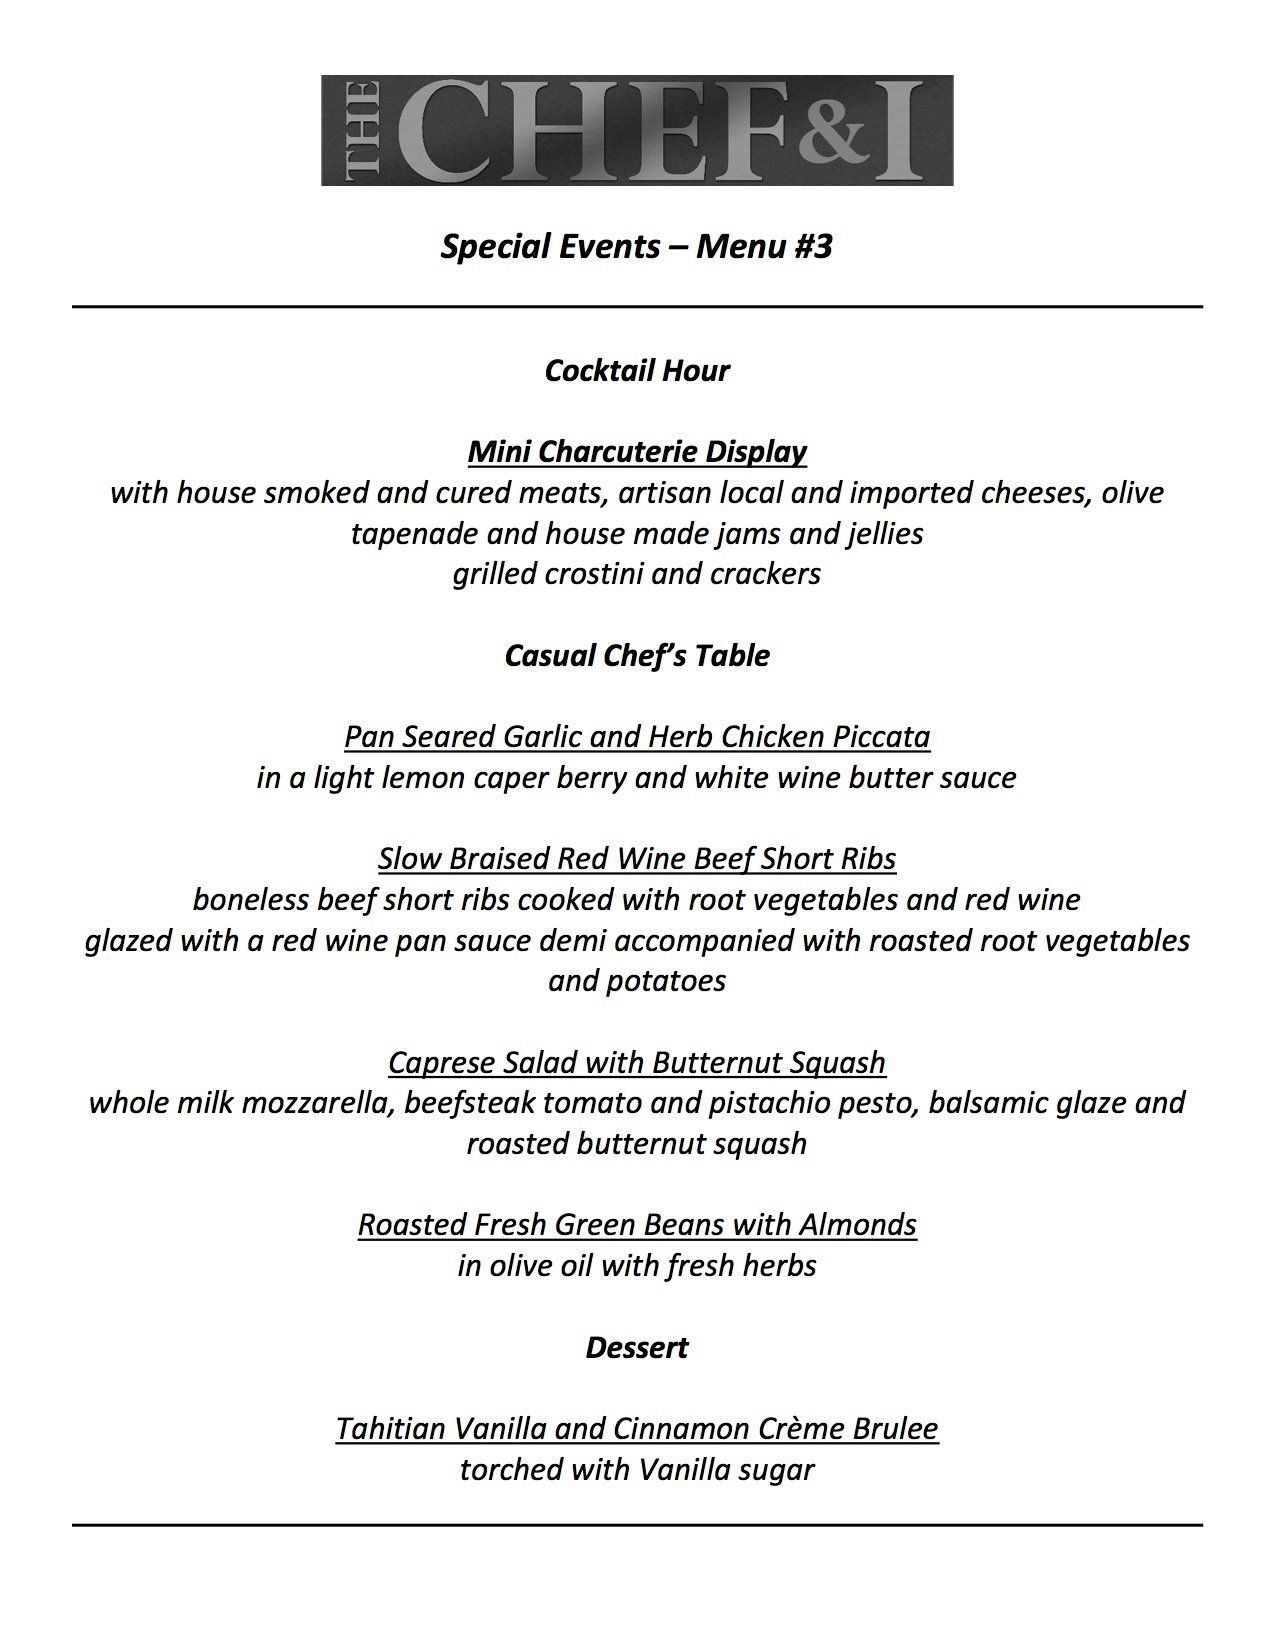 Special Events Menu 3